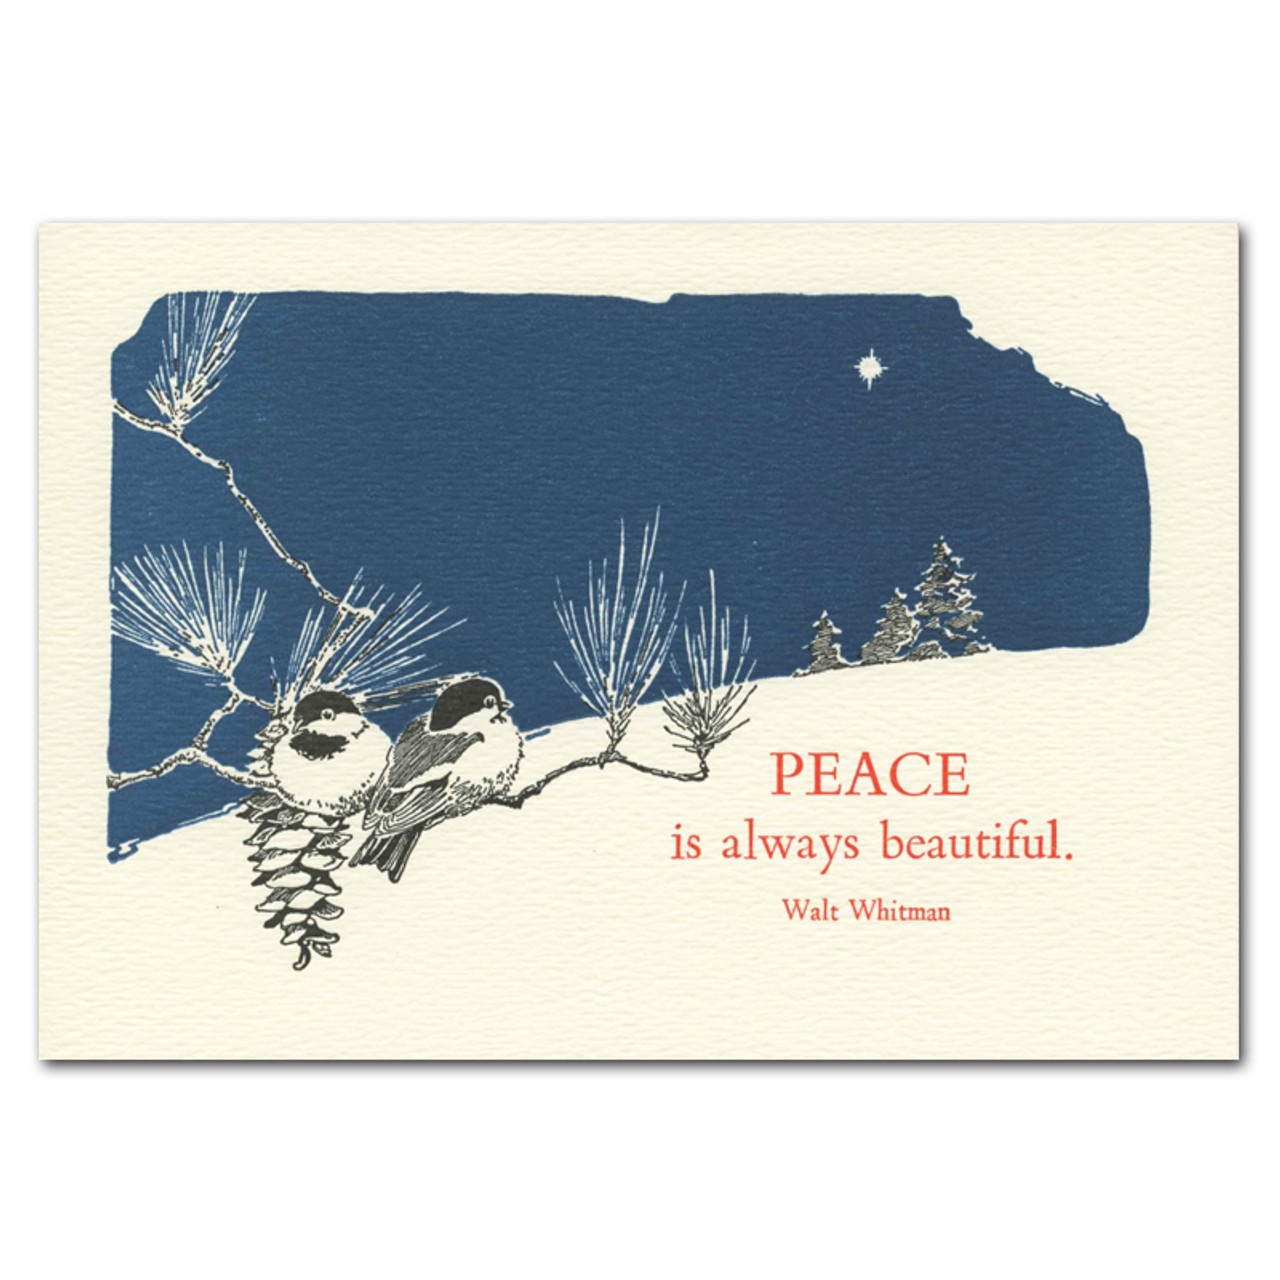 "Beautiful Peace Letterpress Holiday Card cover shows chickadees on a pine branch against a backdrop of a snowy night. Quotation reads, ""Peace is always beautiful - Walt Whitman"""